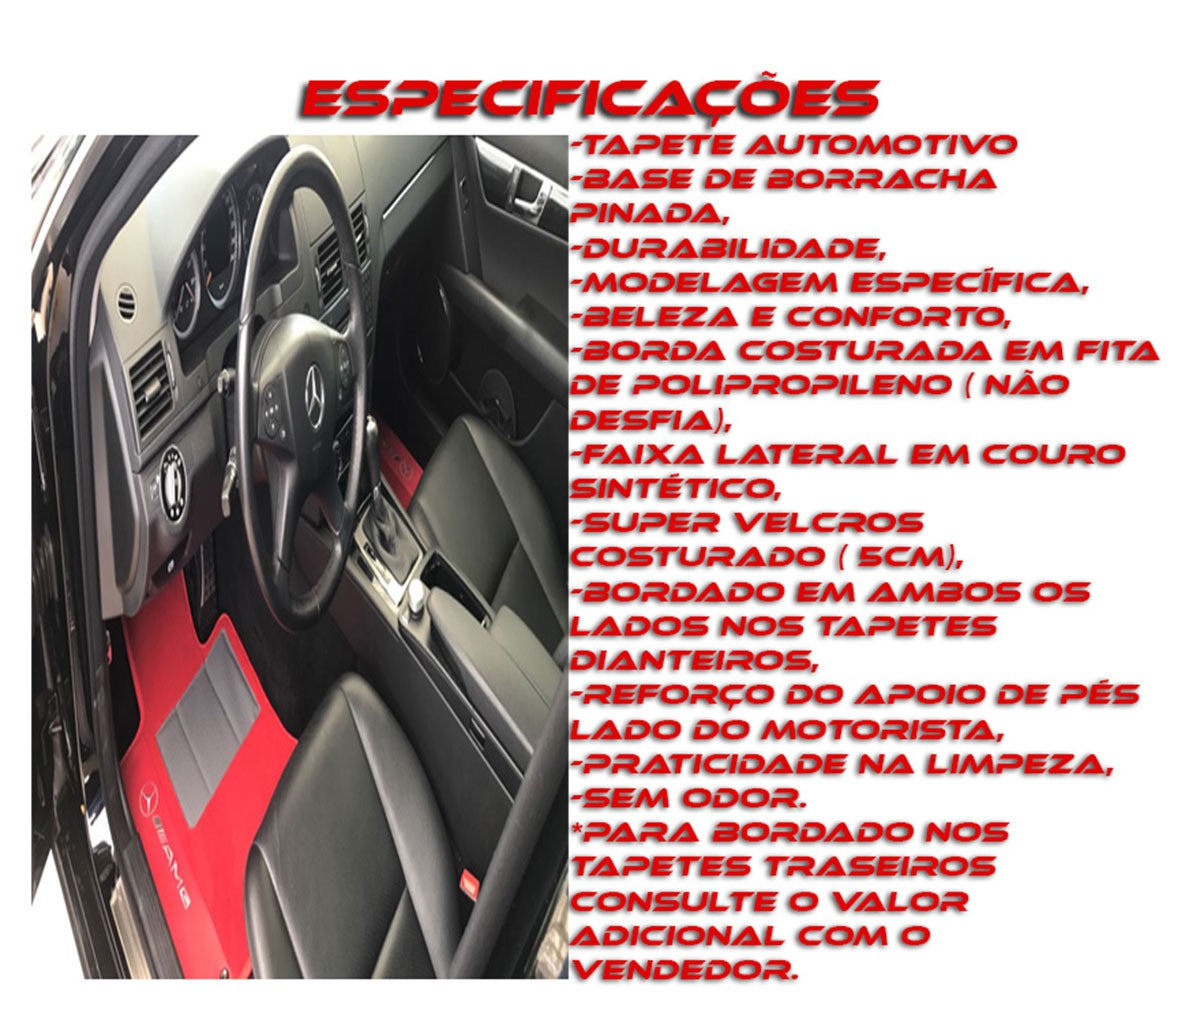 Tapete Fiat Palio Sporting Borracha Pvc Base Borracha Pinada